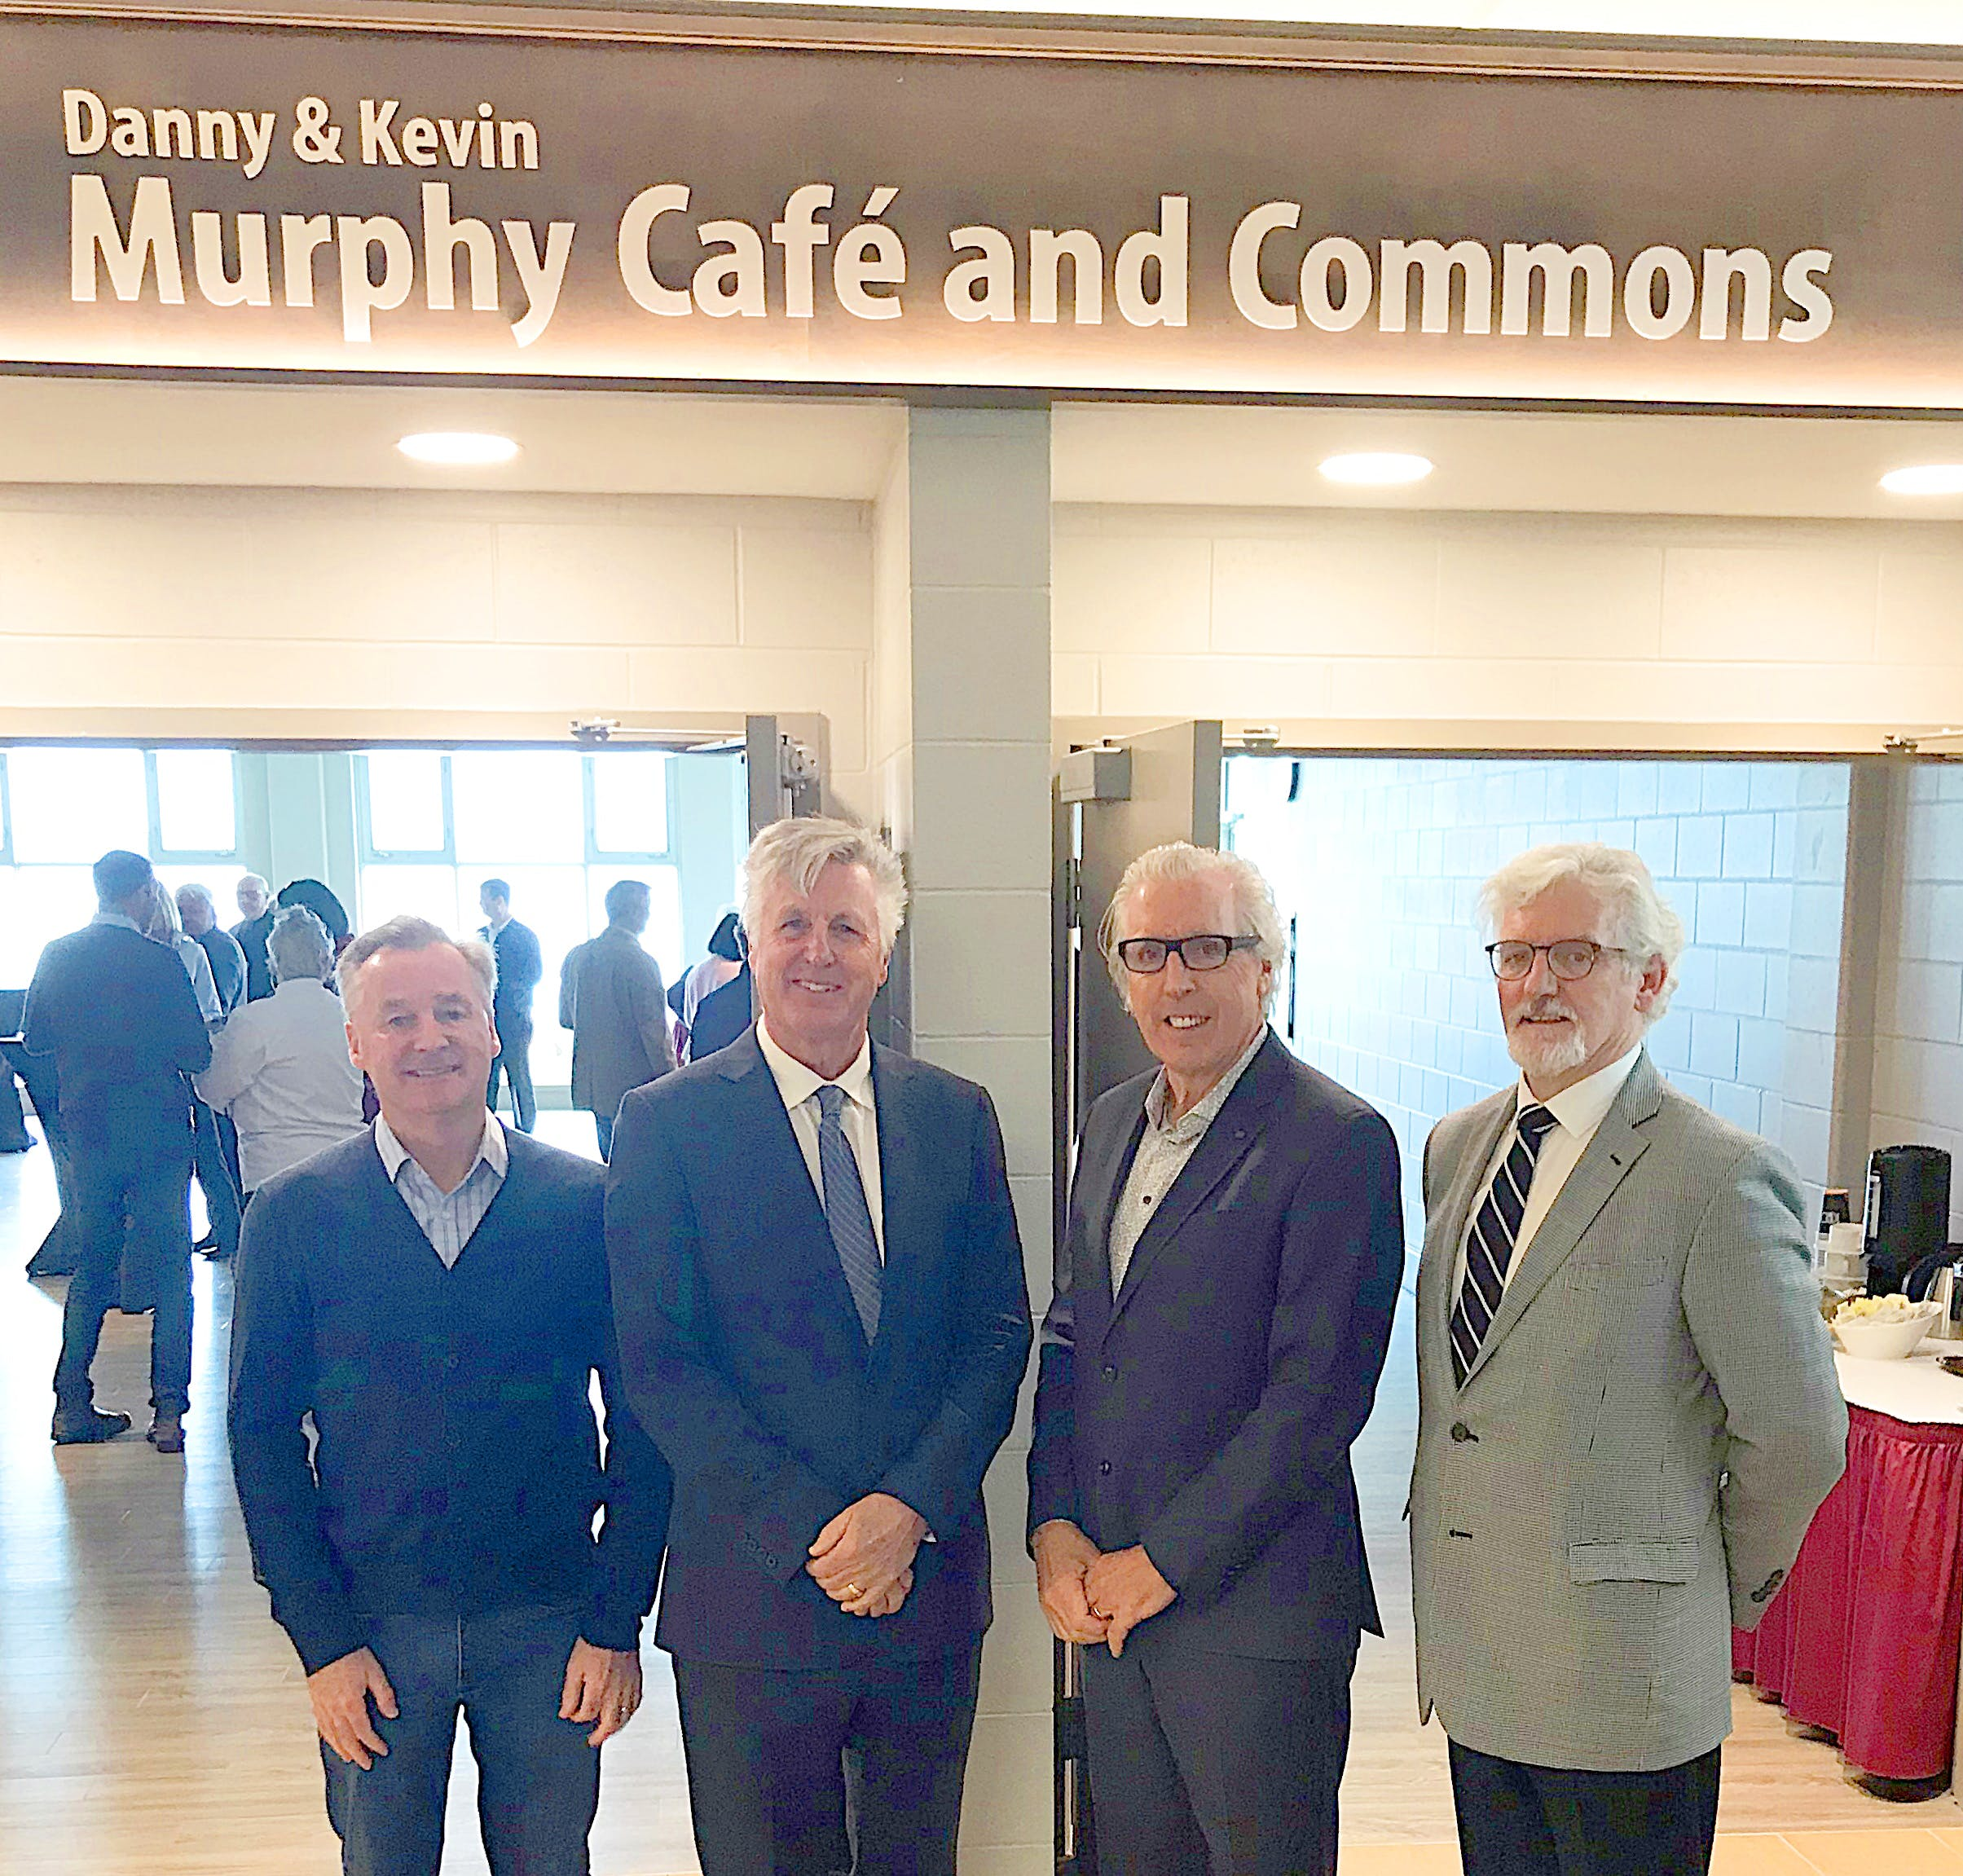 Holland College foundation board chairman Ron Keefe, left, and Holland College president Sandy MacDonald, right, congratulate leadership donors Danny and Kevin Murphy, centre, on the naming of the Danny and Kevin Murphy Café and Commons at the college's Tourism and Culinary Centre in Charlottetown.